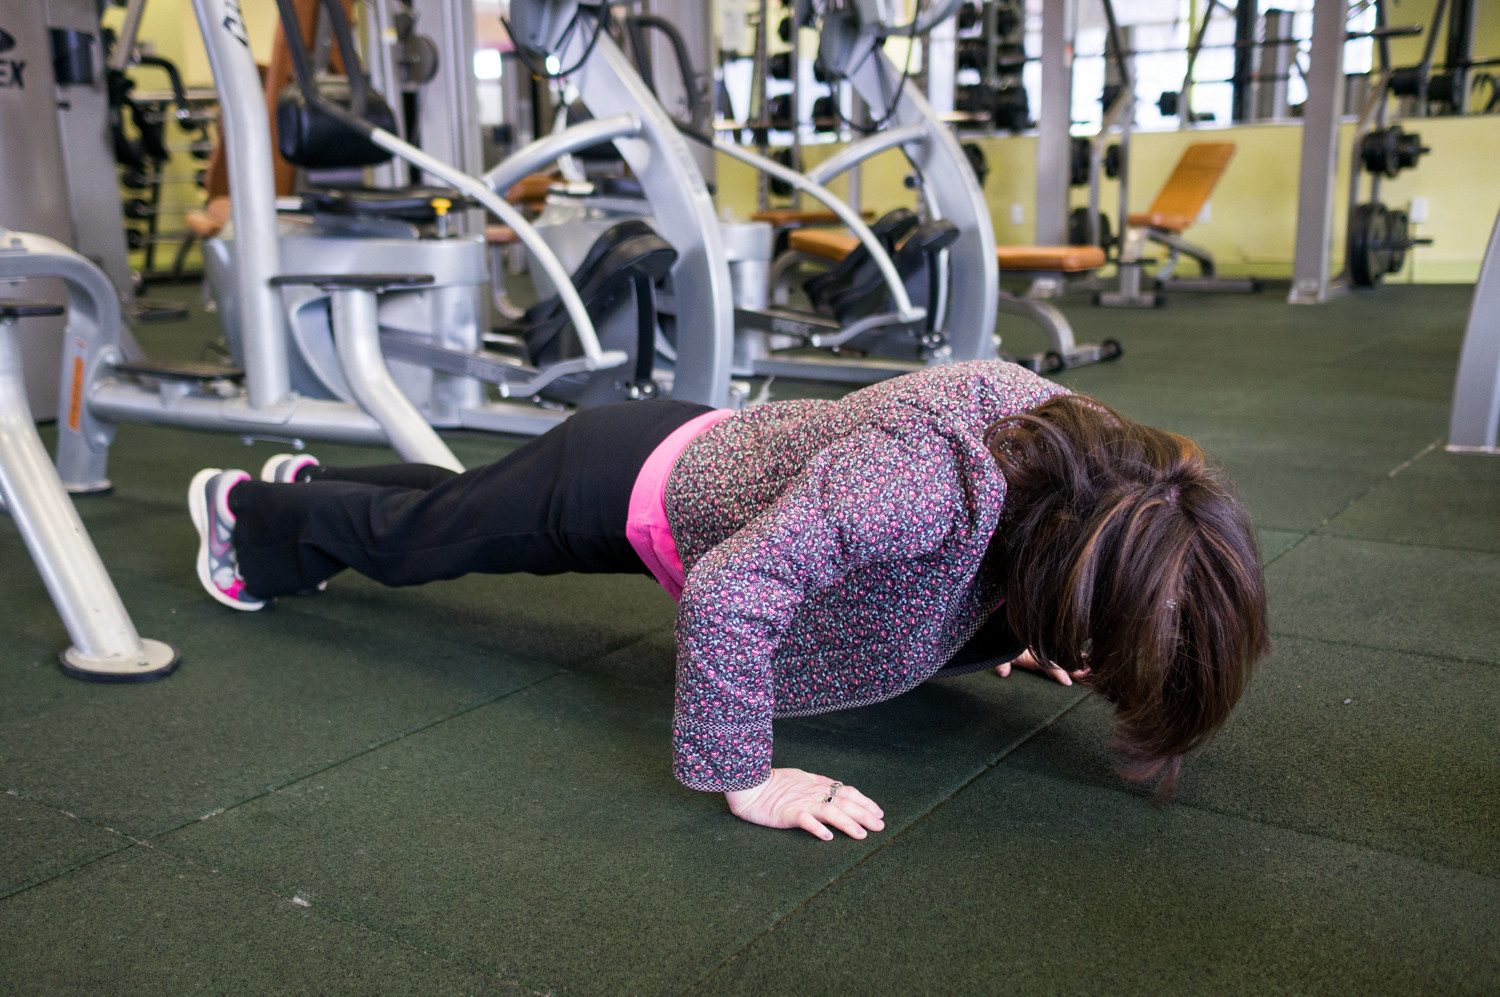 'People think I'm this weak little thing, but when I say that I can exercise, people don't believe me,' said Judy Fettman, an Ashkenazi Jewish woman who was diagnosed with a genetic disorder, familial dysautonomia, when she was nine months old. Fettman has always loved to exercise, saying it improves her quality of life. 'I try to find something fun every day.'